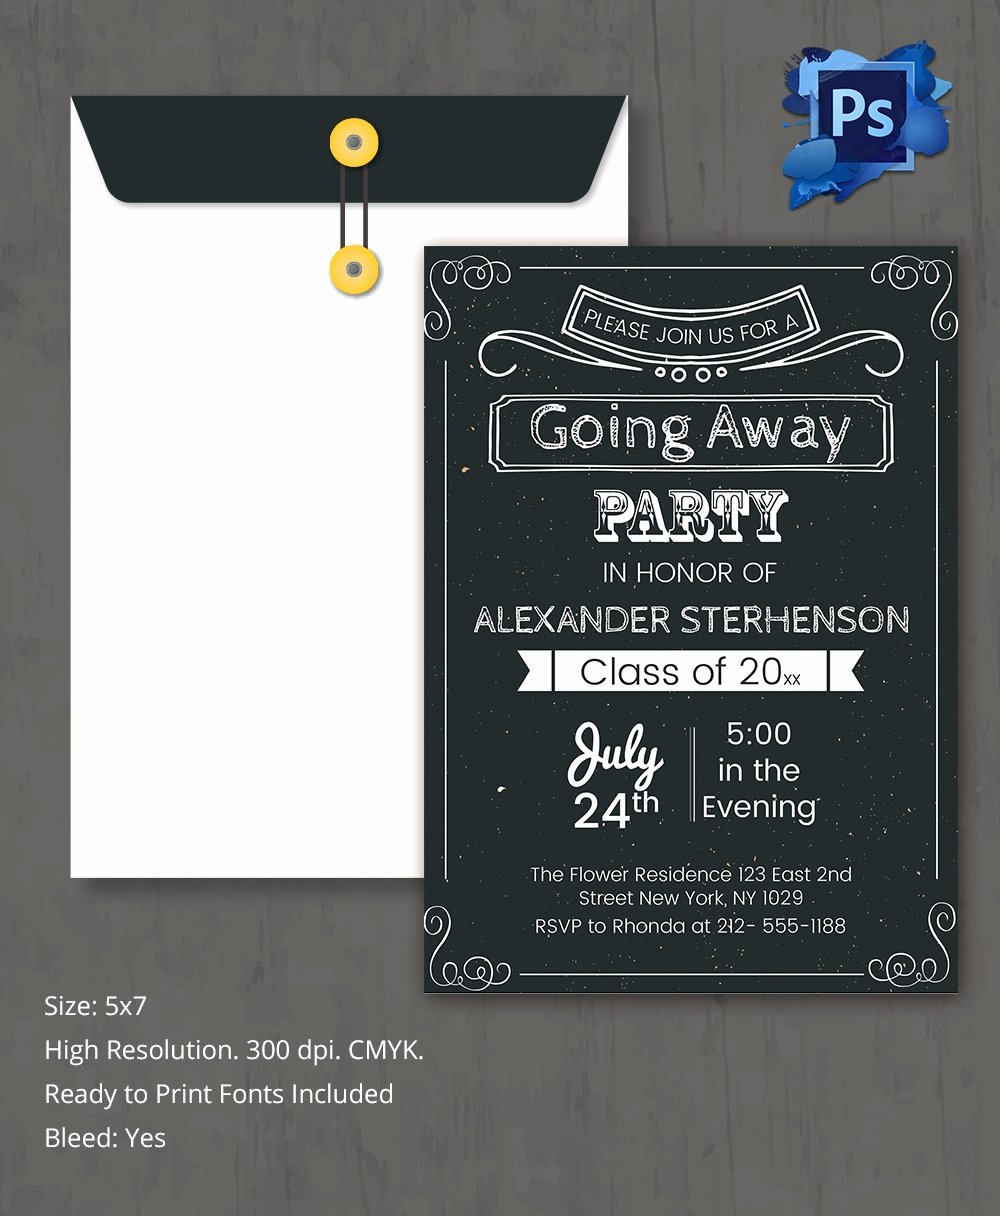 Farewell Invitation Template Free Luxury Farewell Party Invitation Template 26 Free Psd format